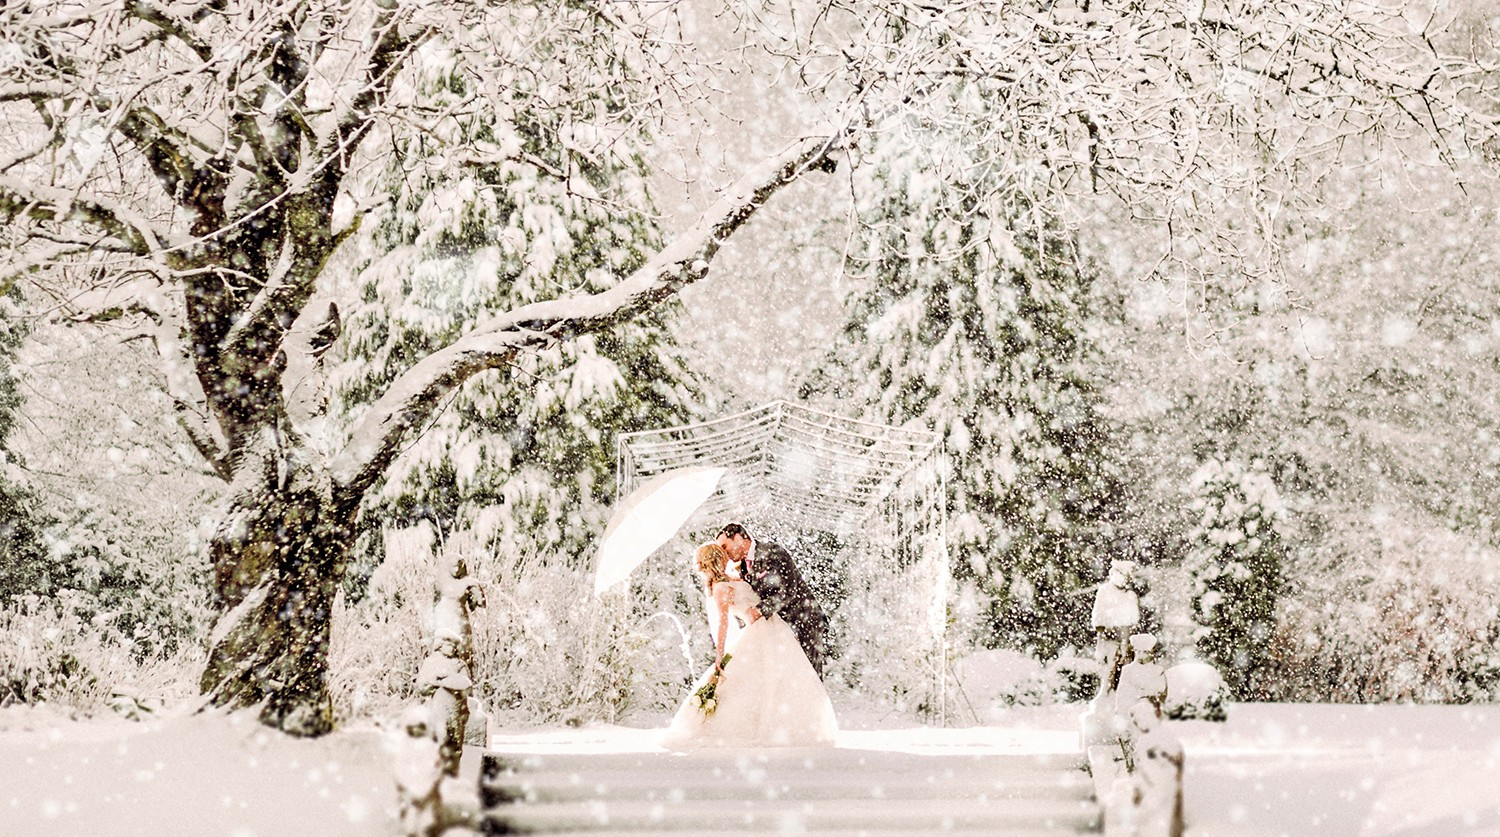 Surprise Blizzard Creates Snowy, Winter Wedding Photos